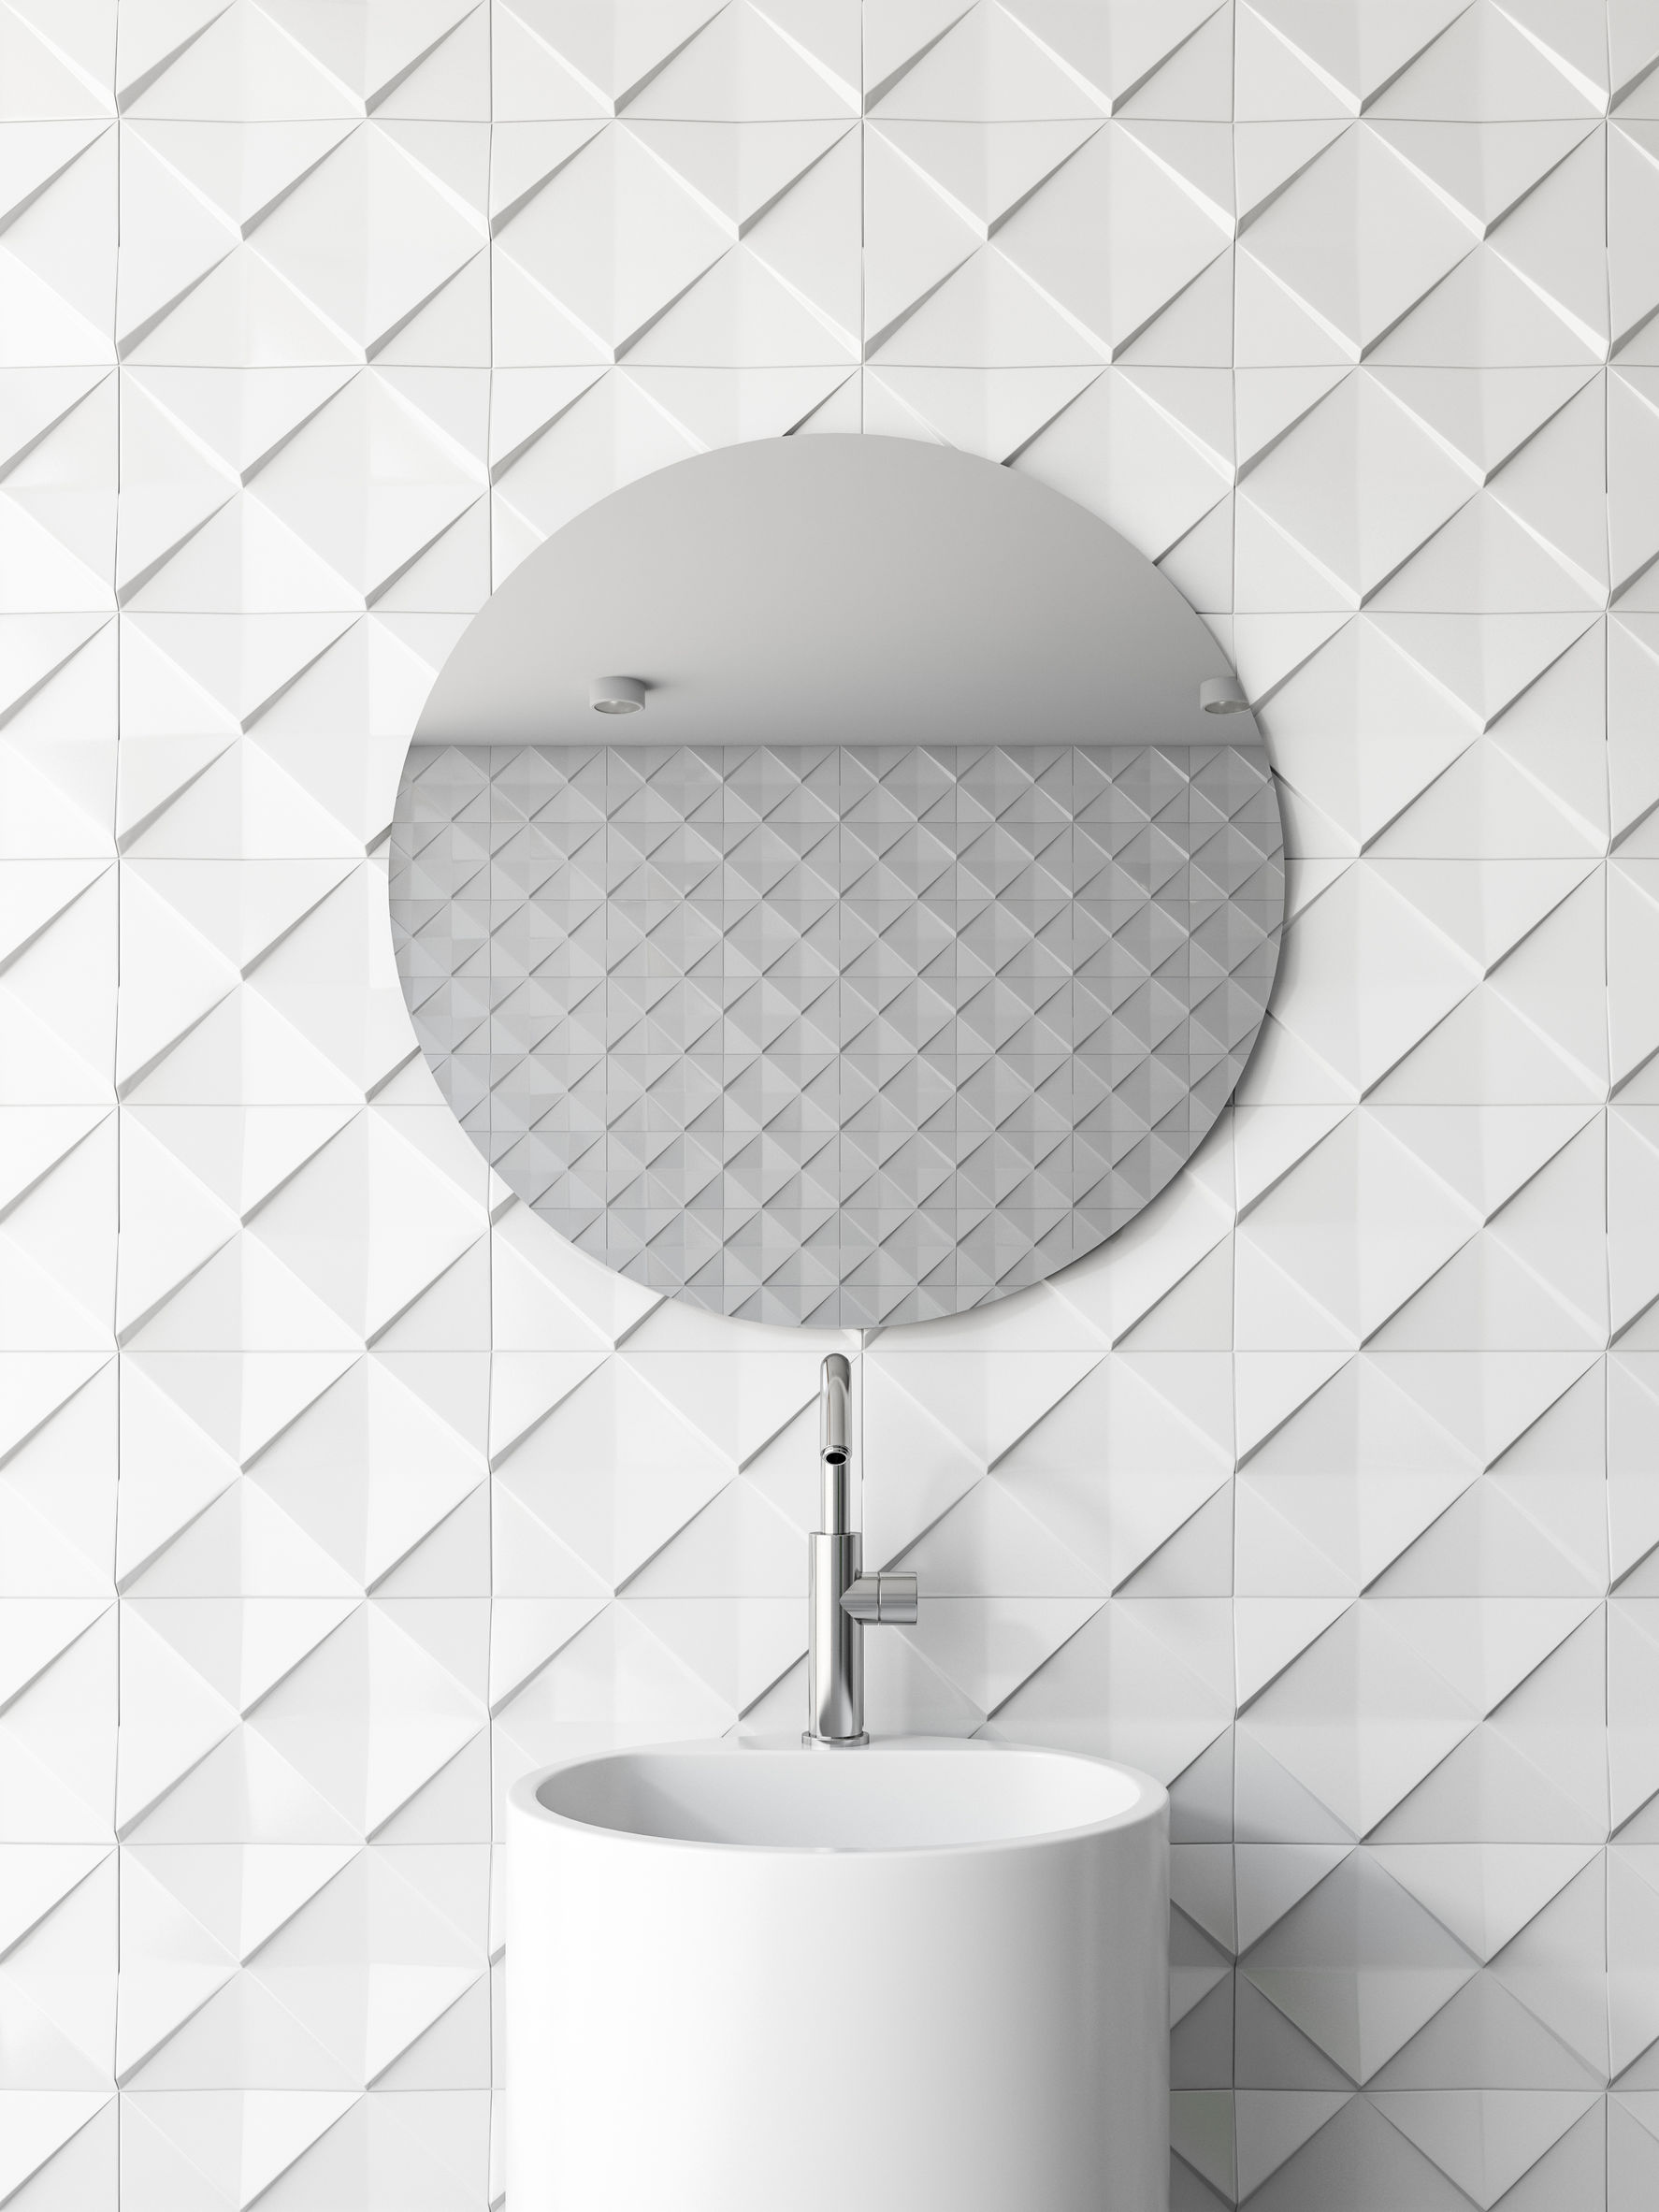 Bathroom trends to stay away from – frameless mirrors